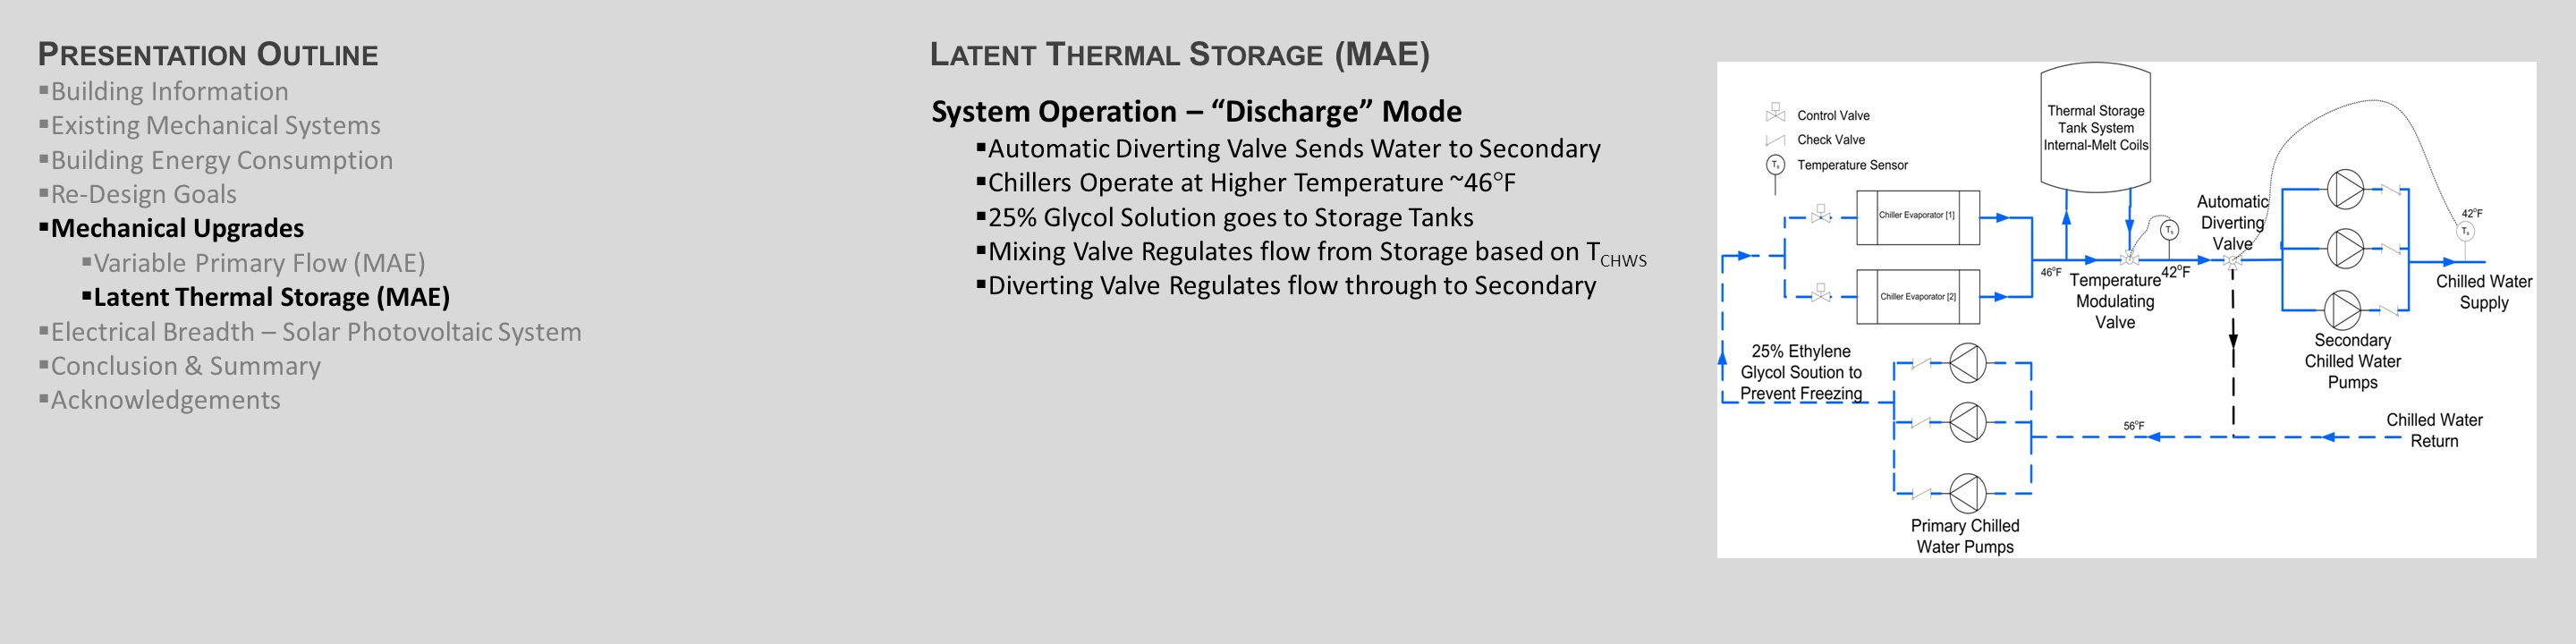 L ATENT T HERMAL S TORAGE (MAE) System Operation – Discharge Mode  Automatic Diverting Valve Sends Water to Secondary  Chillers Operate at Higher Temperature ~46°F  25% Glycol Solution goes to Storage Tanks  Mixing Valve Regulates flow from Storage based on T CHWS  Diverting Valve Regulates flow through to Secondary P RESENTATION O UTLINE  Building Information  Existing Mechanical Systems  Building Energy Consumption  Re-Design Goals  Mechanical Upgrades  Variable Primary Flow (MAE)  Latent Thermal Storage (MAE)  Electrical Breadth – Solar Photovoltaic System  Conclusion & Summary  Acknowledgements